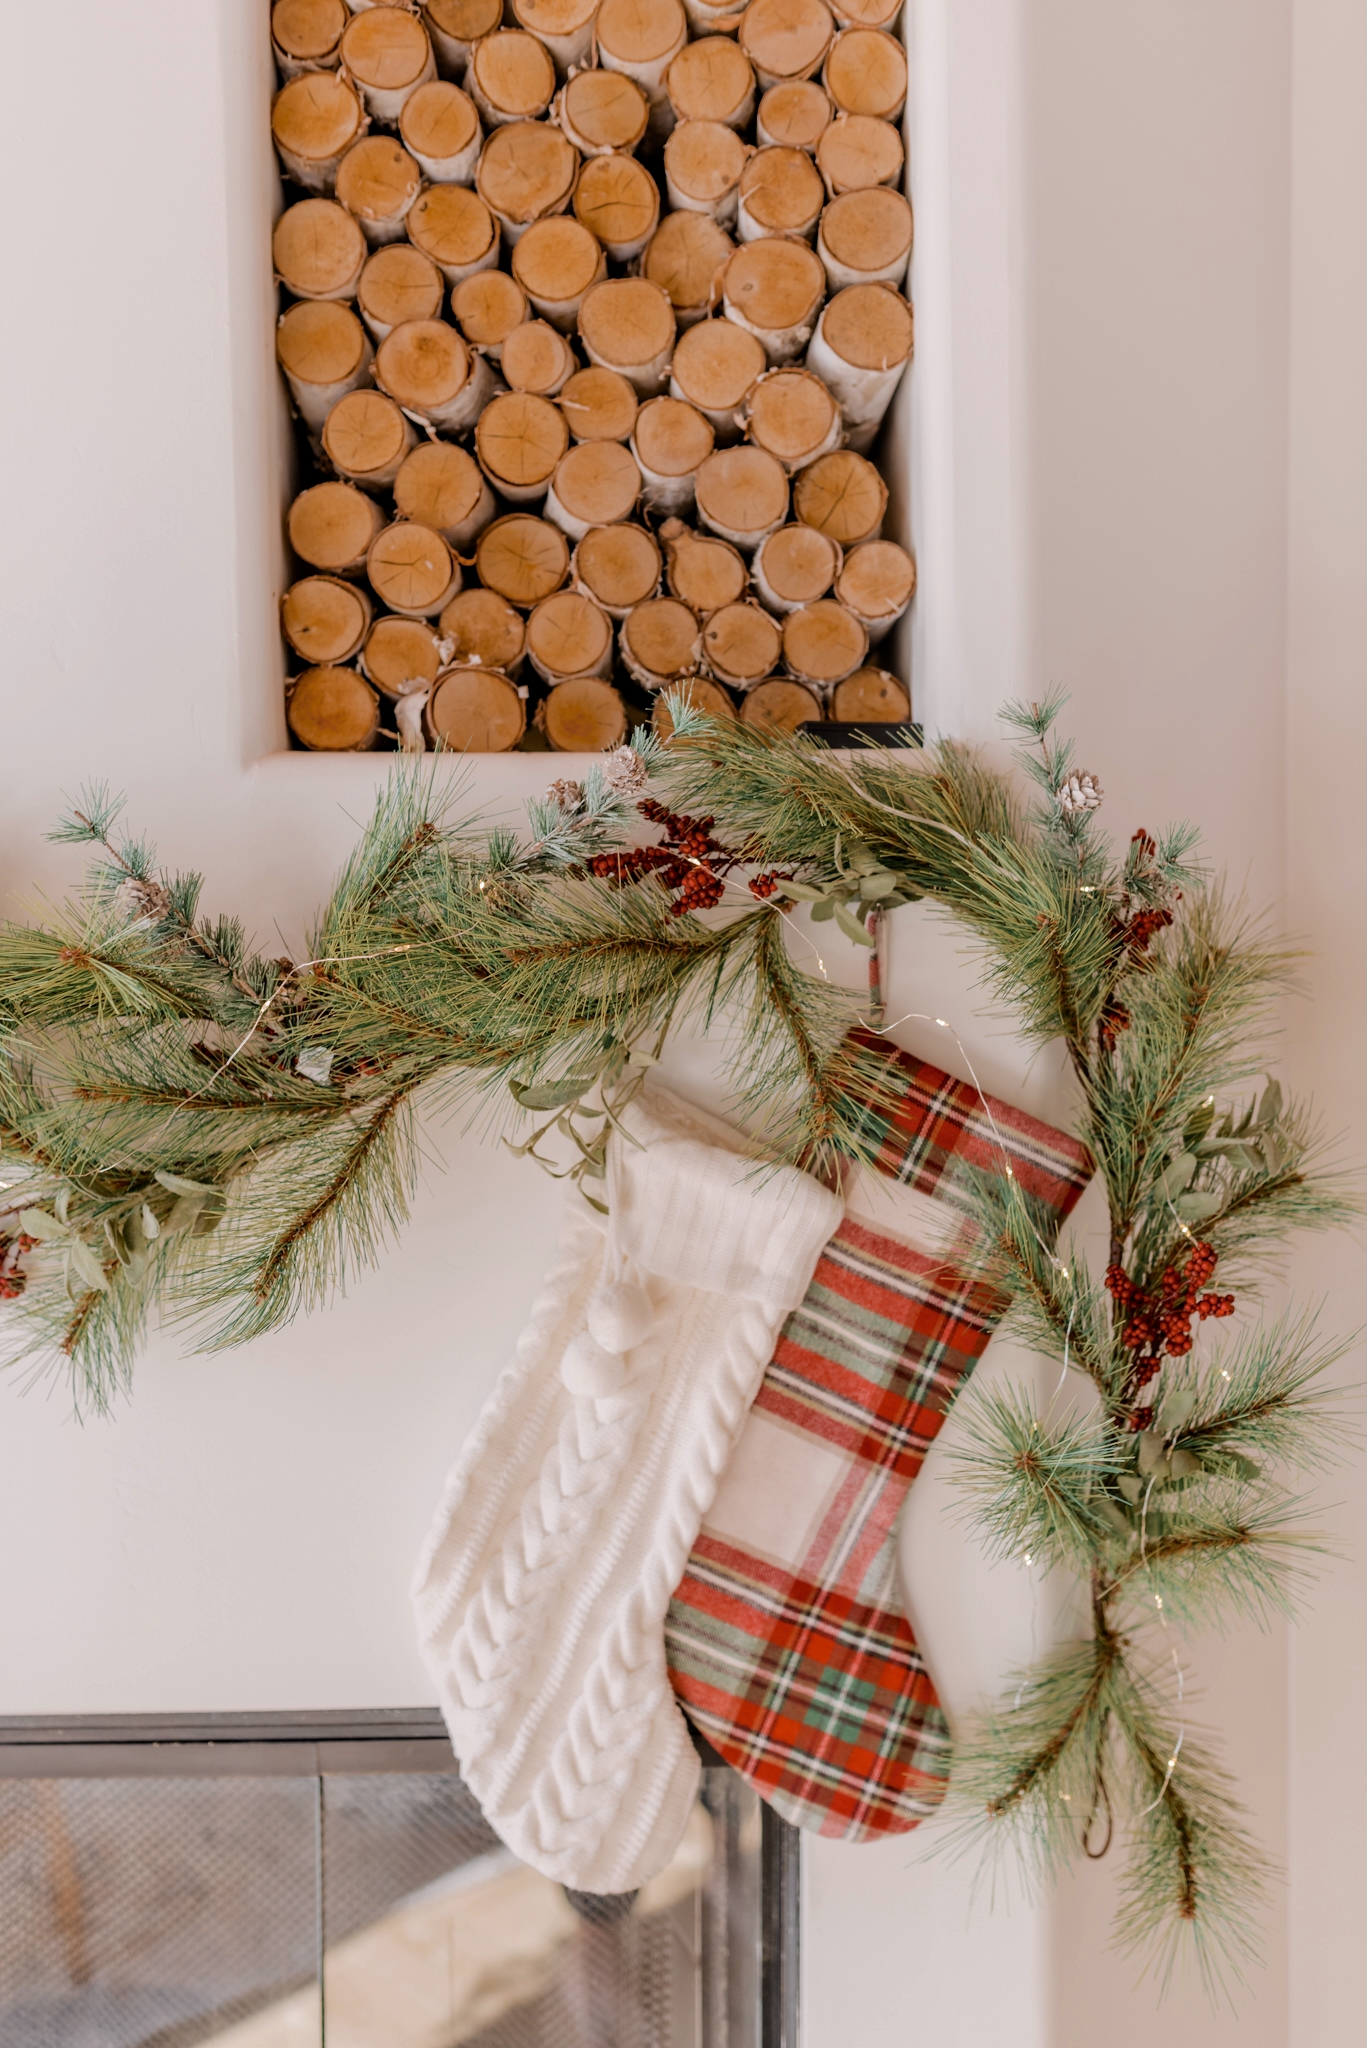 Holiday Gift Guide for the Home   Gifts for the Home by popular San Diego life and style blog, Navy Grace: image of a fireplace mantle decorated with a Christmas garland and white knit stocking and red, green and white plaid stocking.